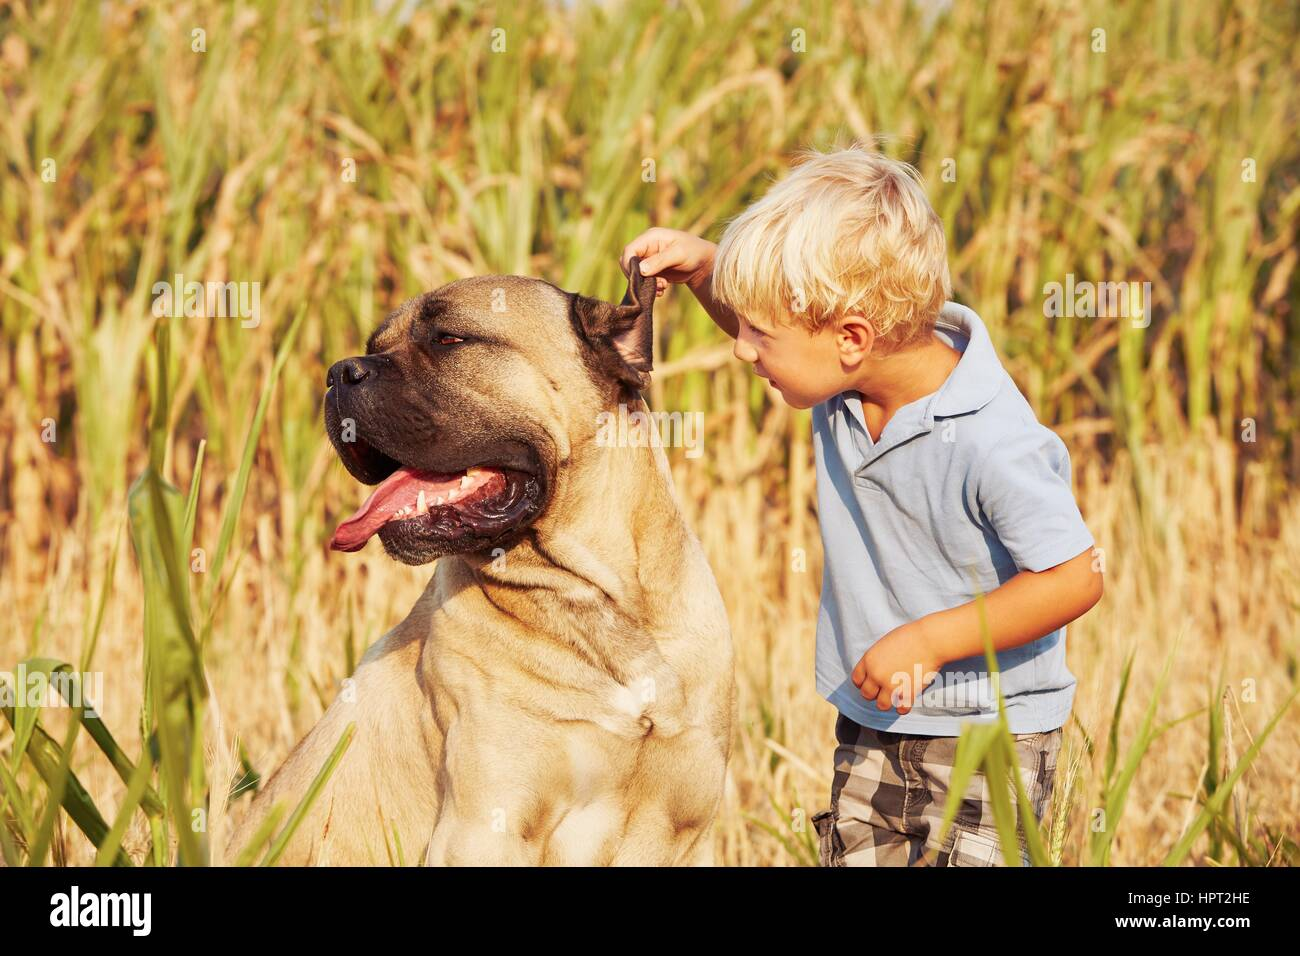 Little boy is playing with his large dog. - Stock Image